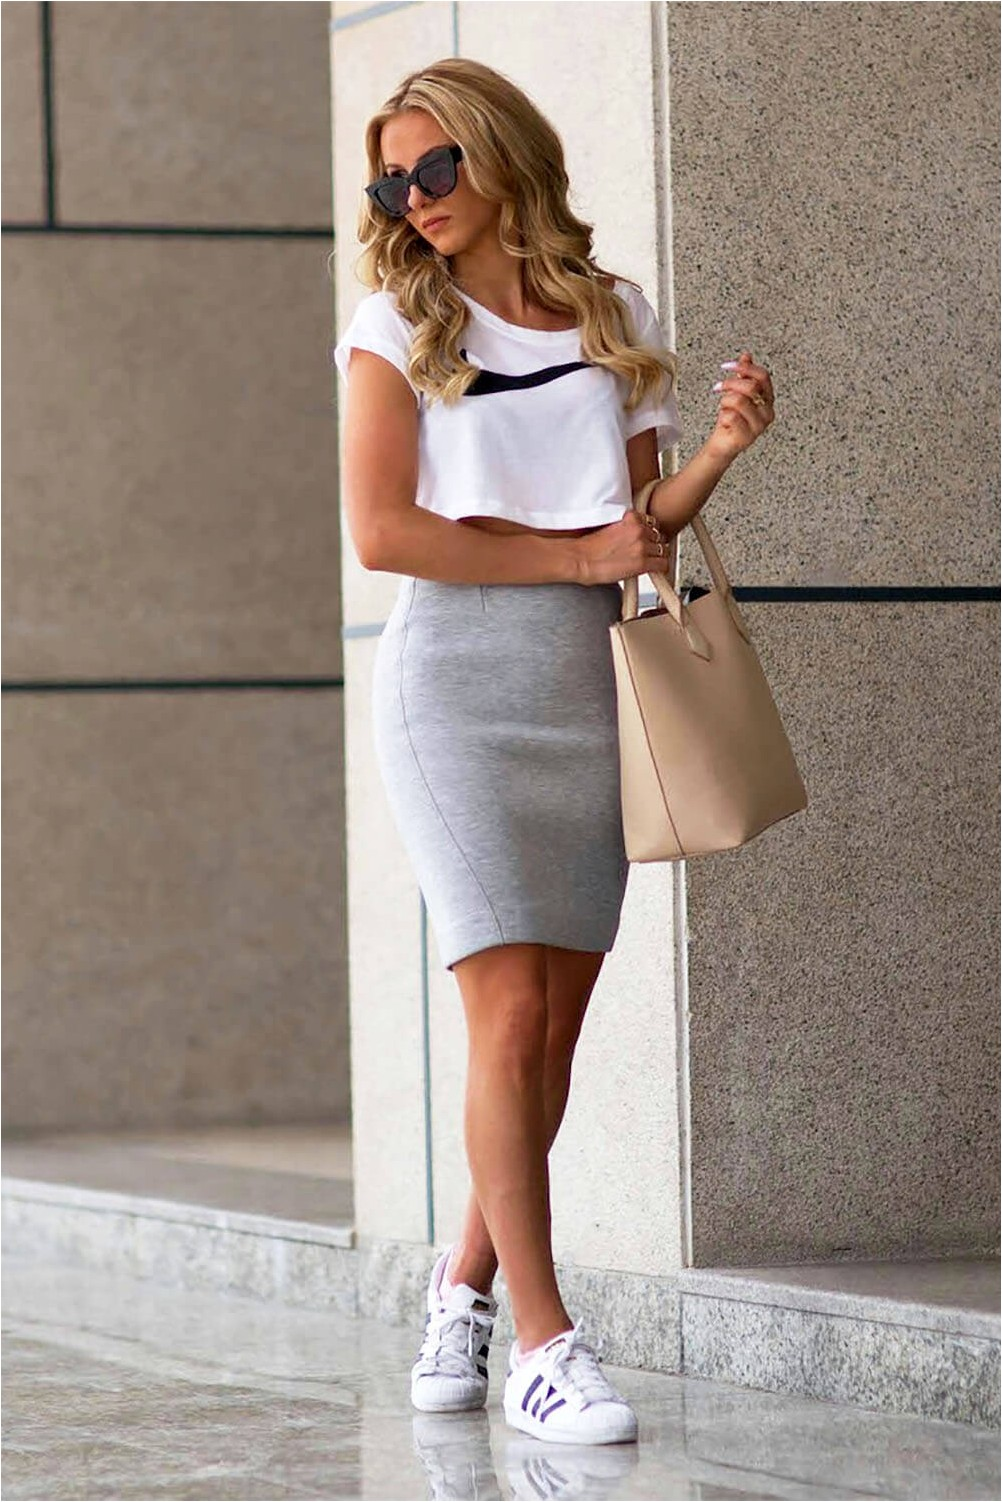 Pencil skirt with sneakers